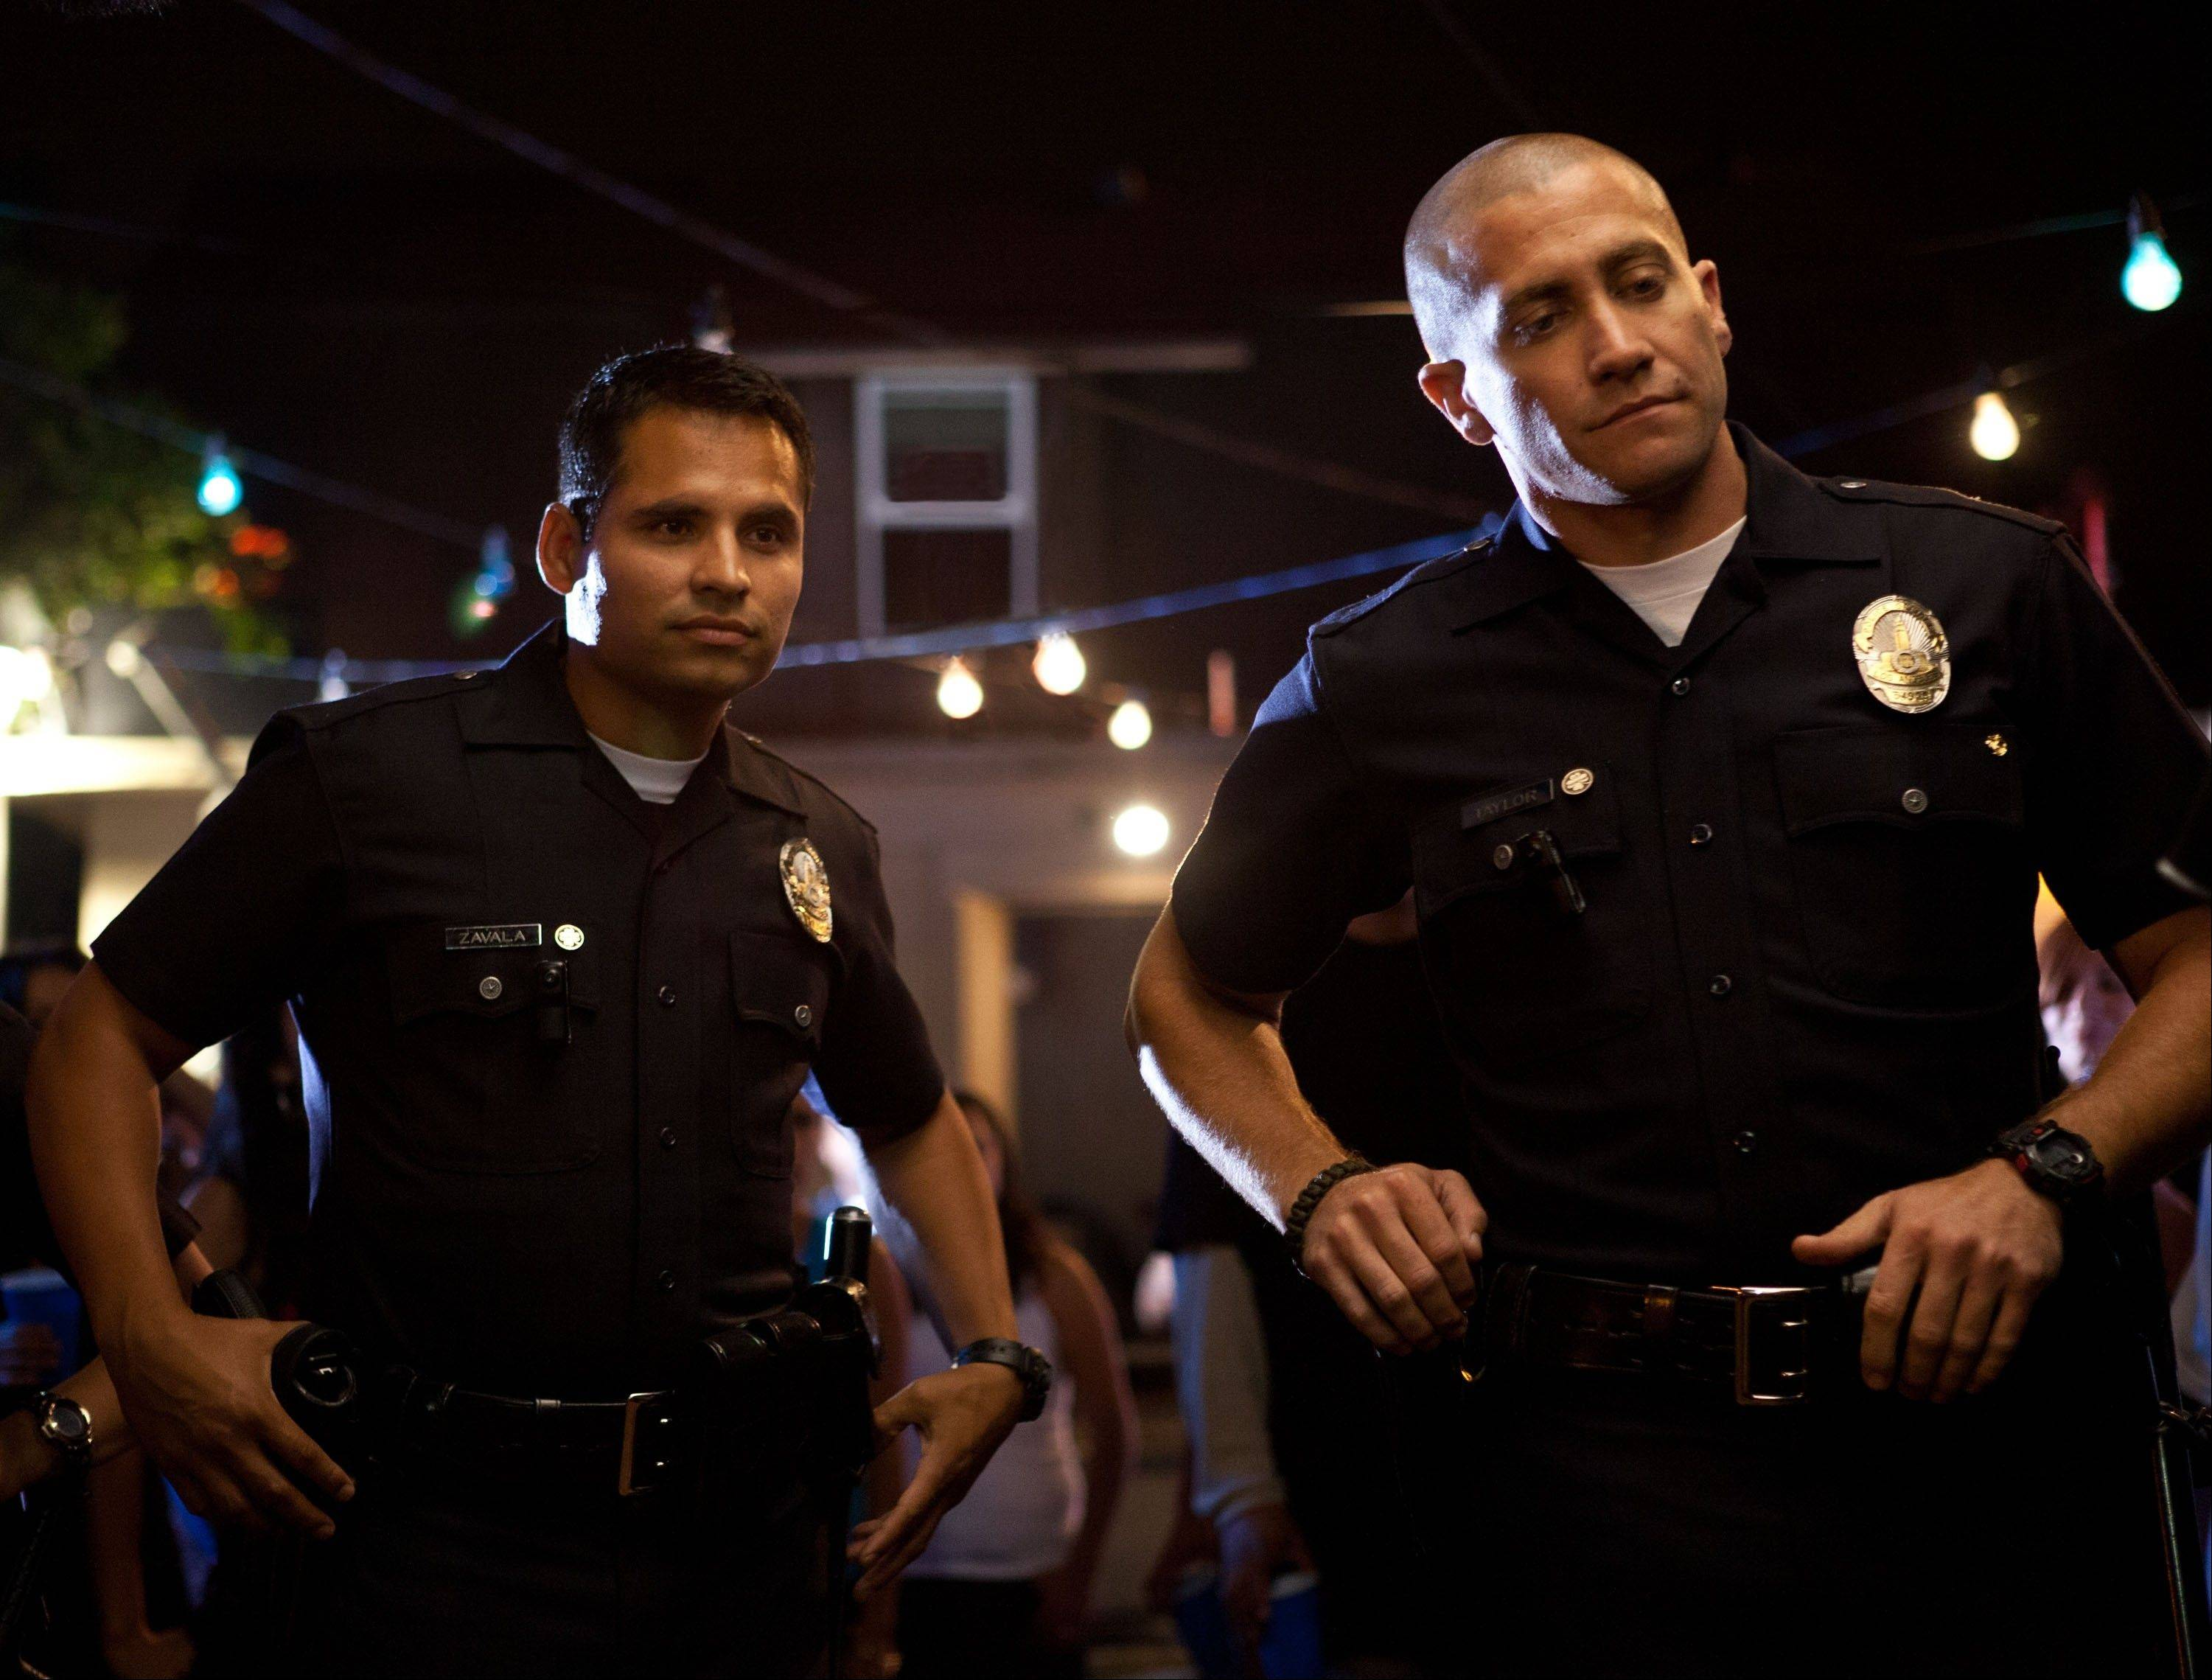 This film image released by Open Road Films shows Michael Pena, left, and Jake Gyllenhaal in a scene from �End of Watch,� which tied for first-pace at the box office with the horror flick �House at the End of the Street.�